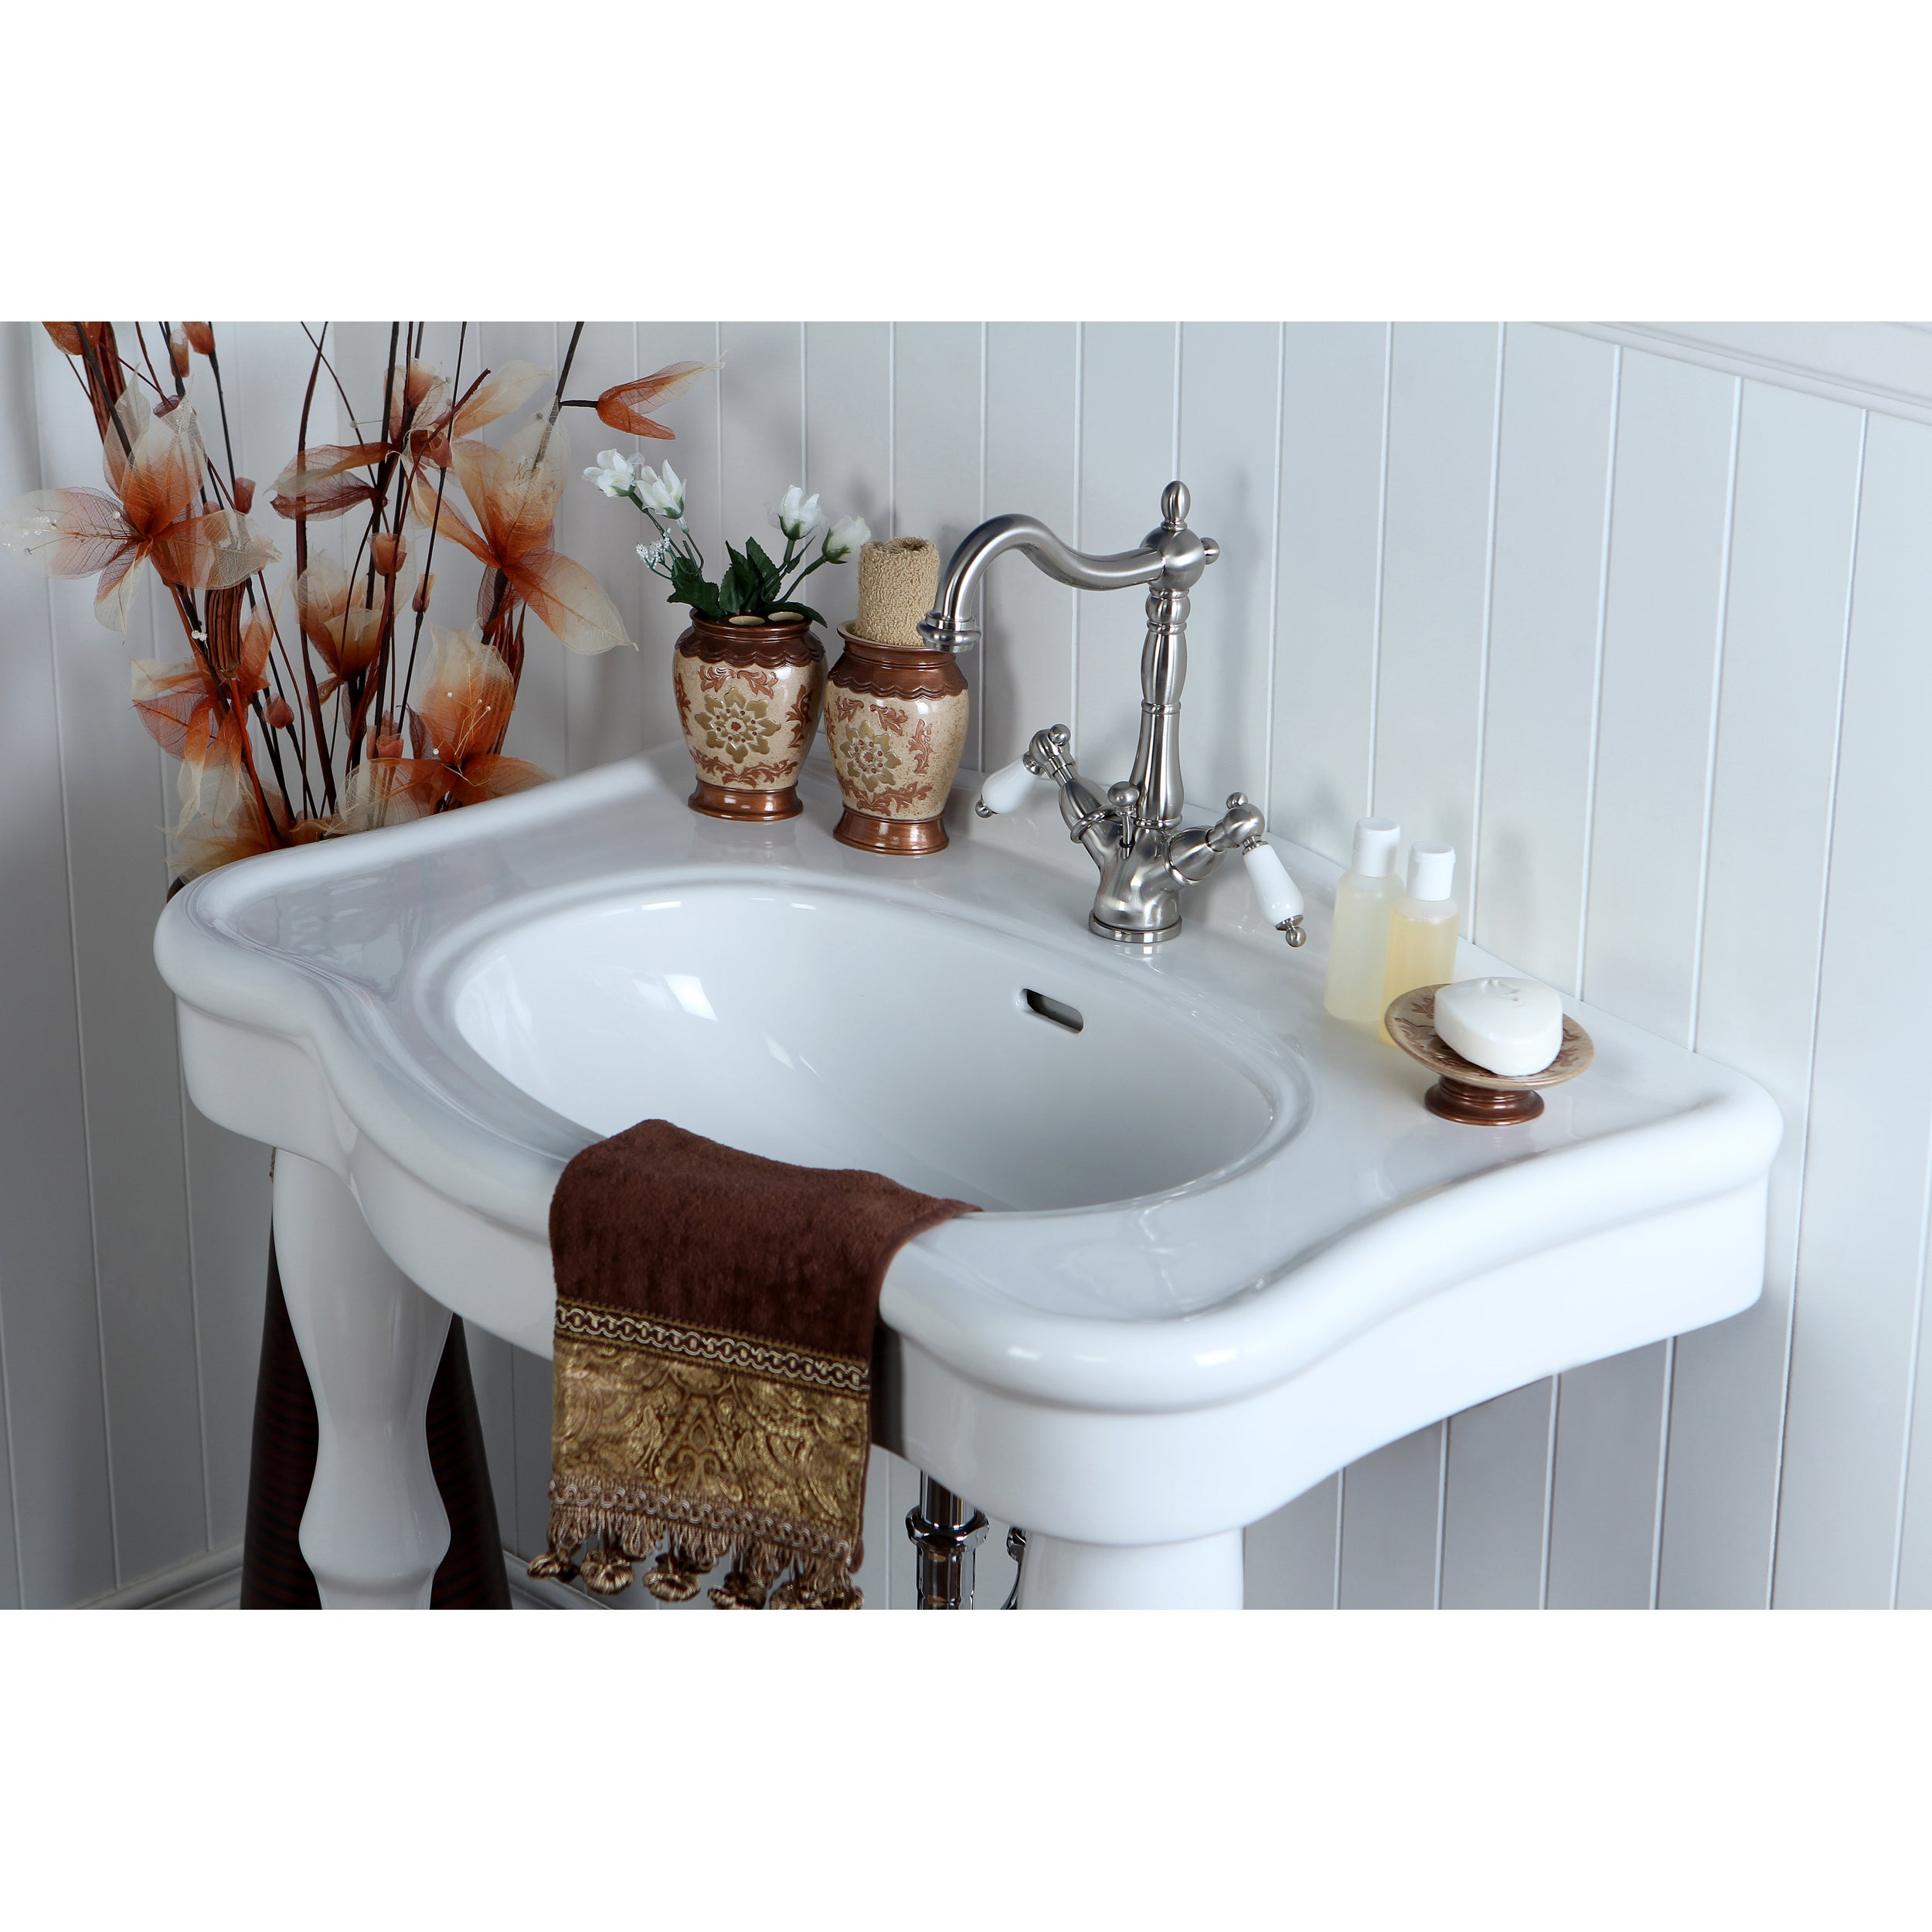 installing removing pedestal remove sinks simple steps bathroom sink to a in how vanity